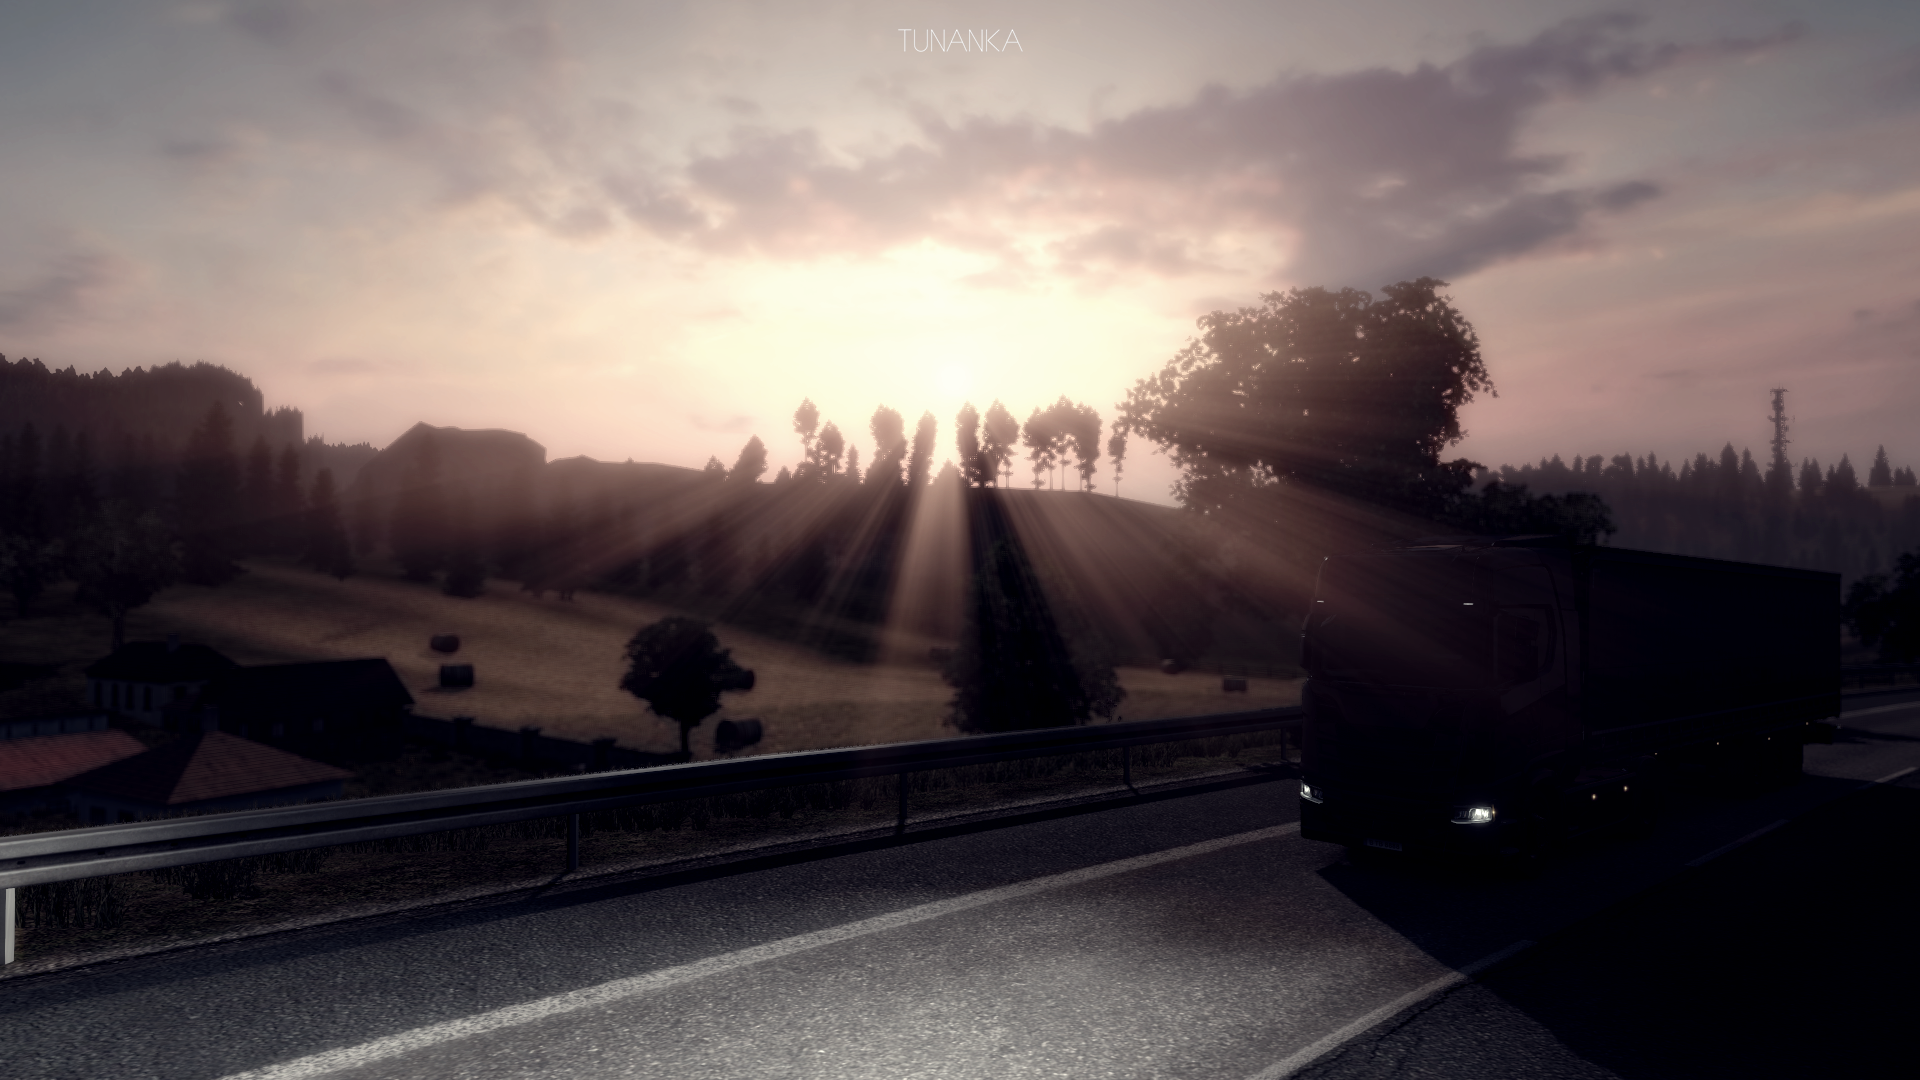 ets2-20190227-195652-00.png